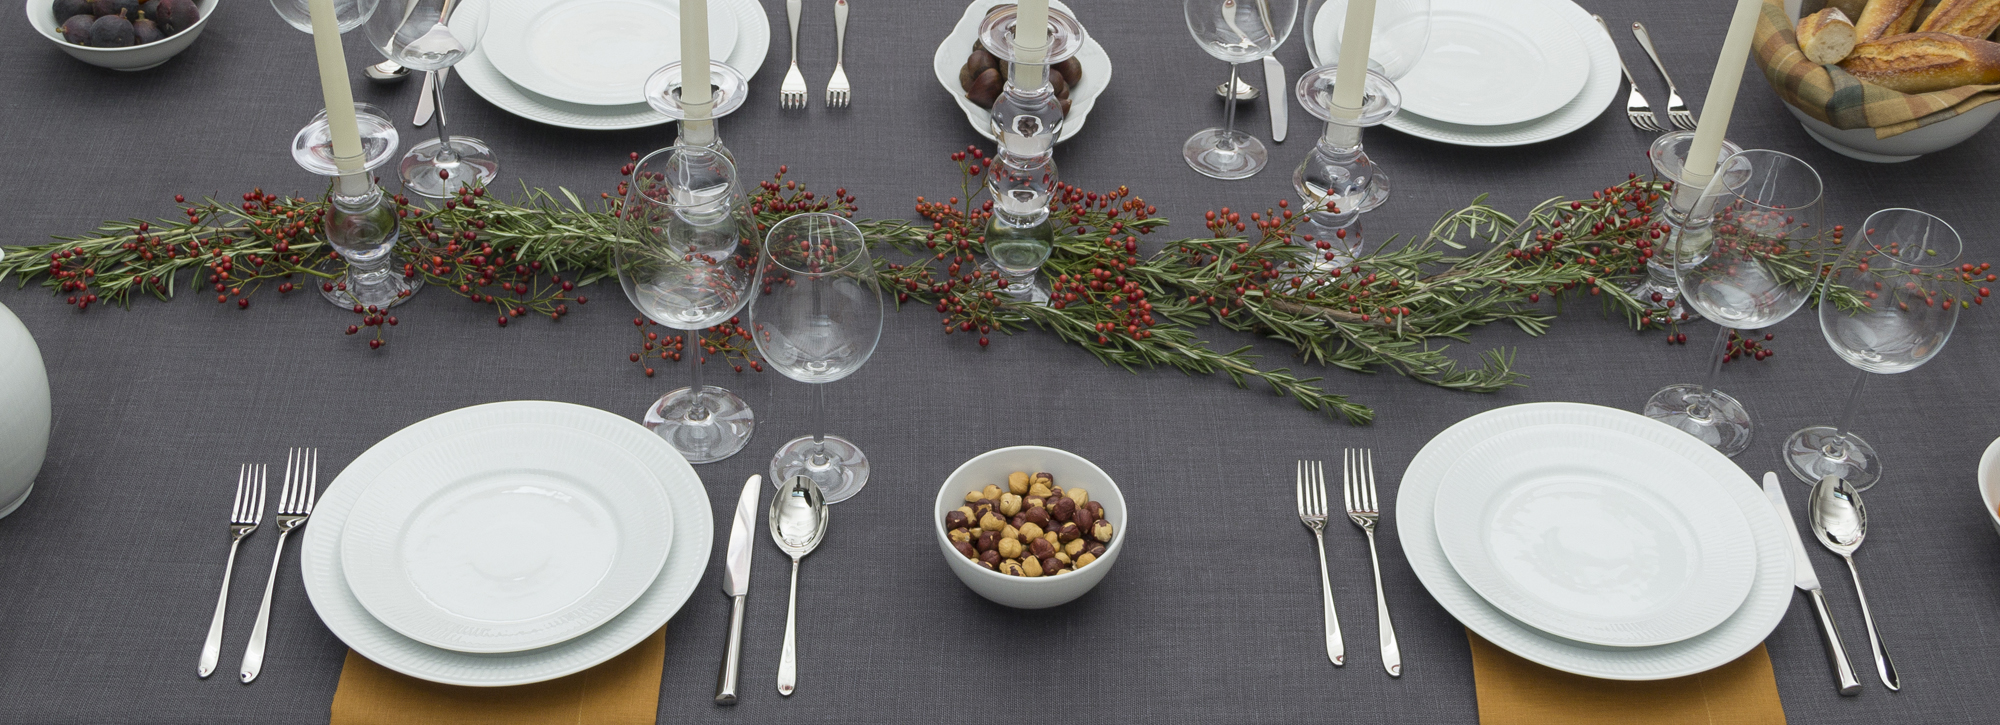 A Table for the Holidays